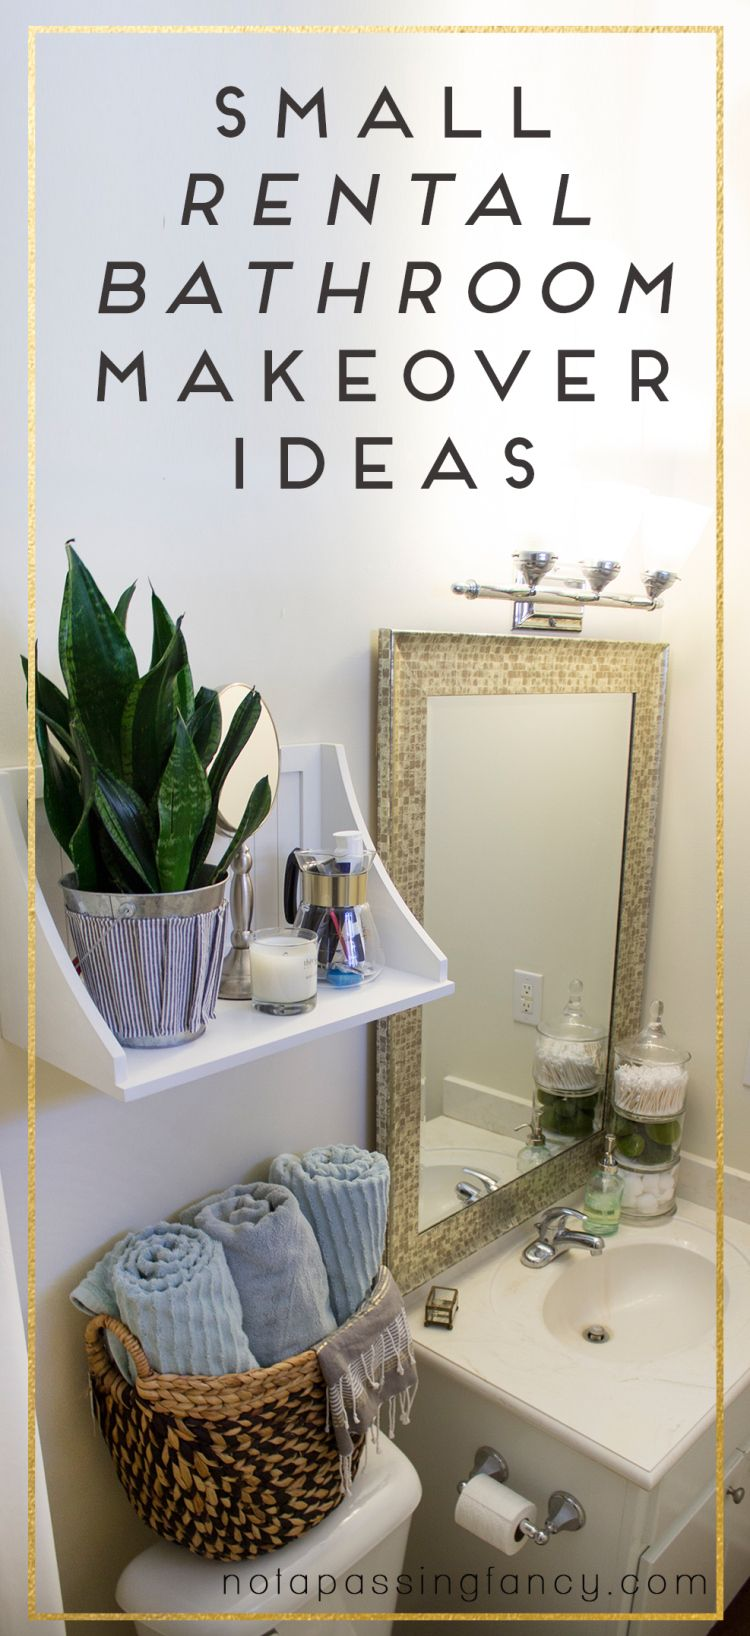 Ordinaire Small Rental Bathroom Makeover Ideas   Not A Passing Fancy Blog